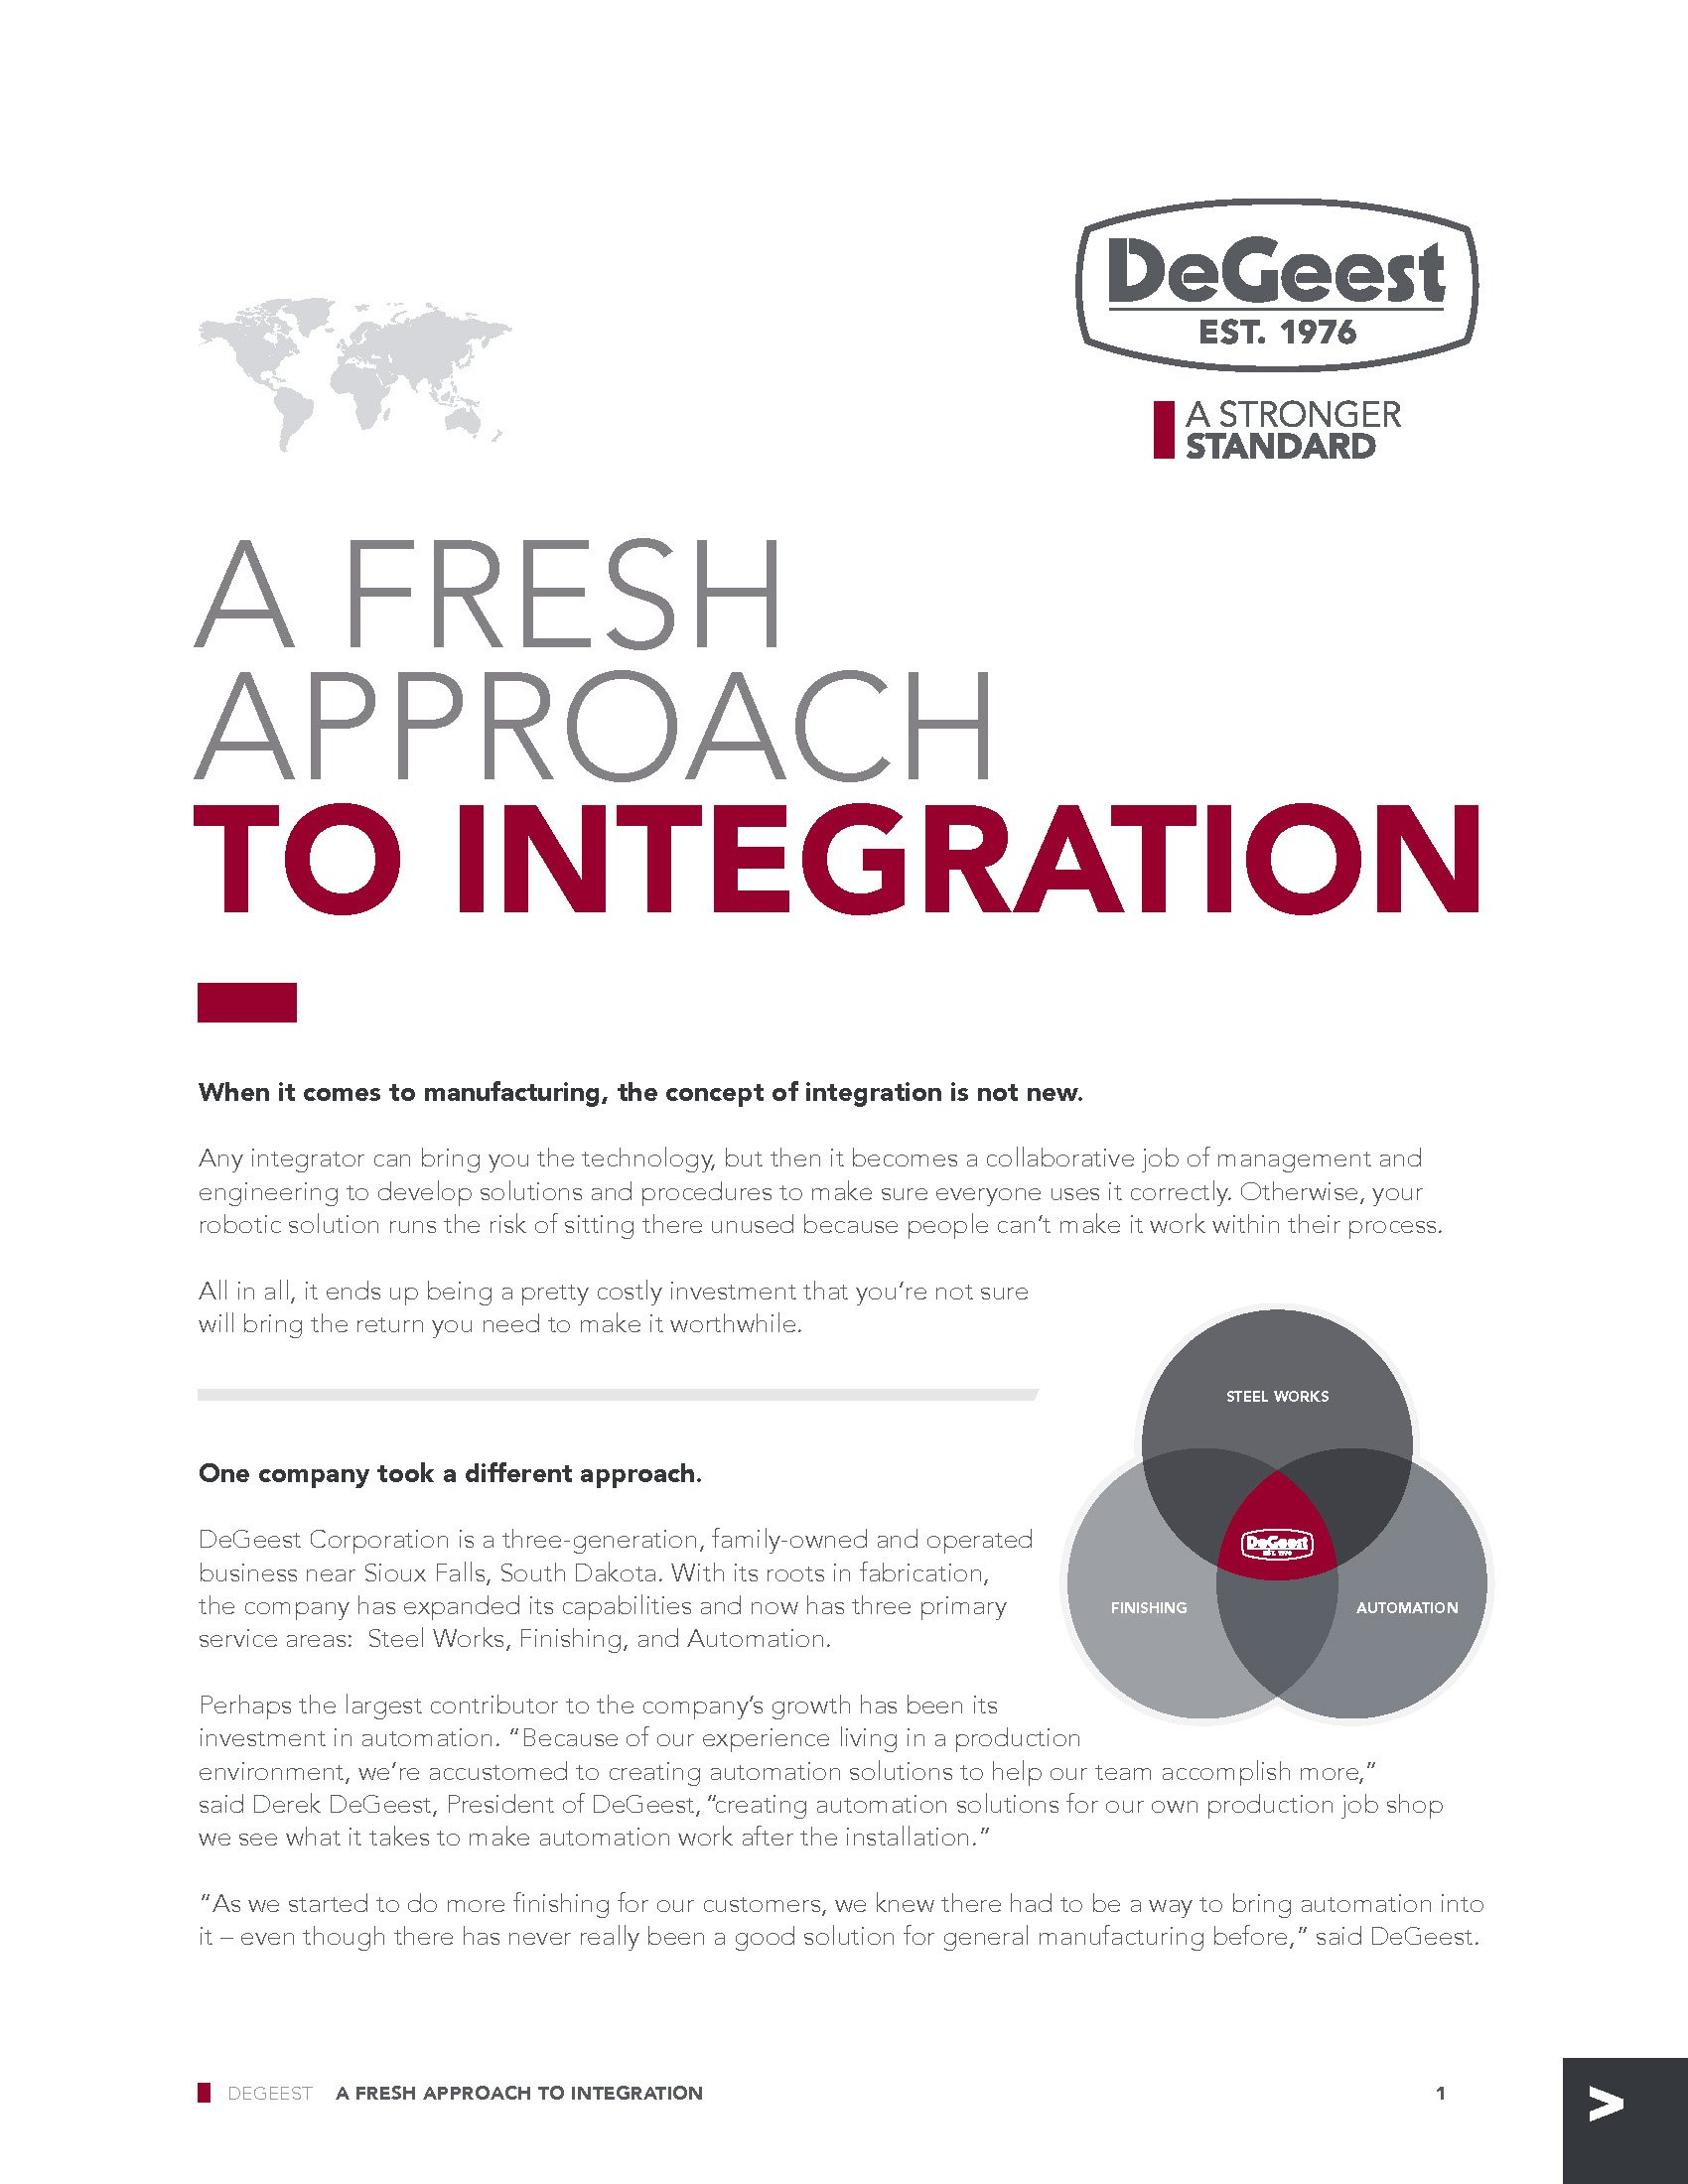 DeGeest Lesta Thought Paper - A Fresh Approach to Integration